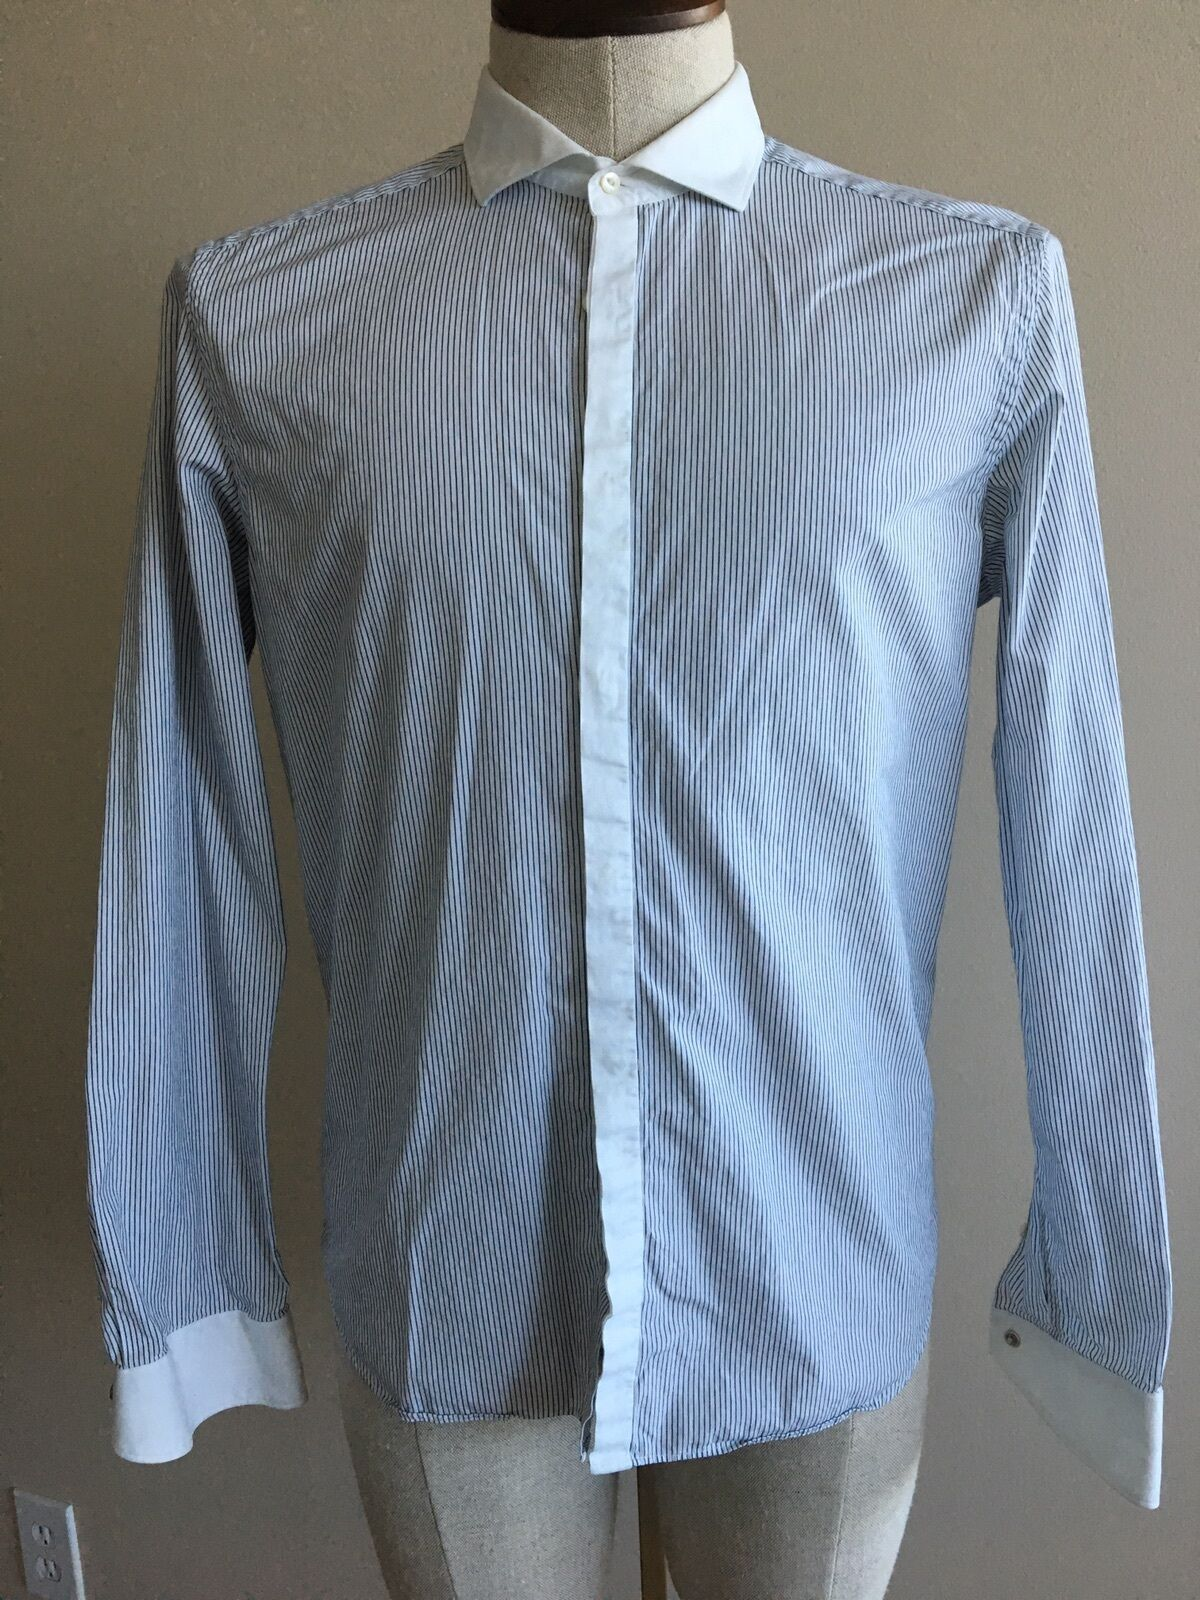 Corneliani Trend Contrast Collar Pinstripe Dress Shirt 16 41